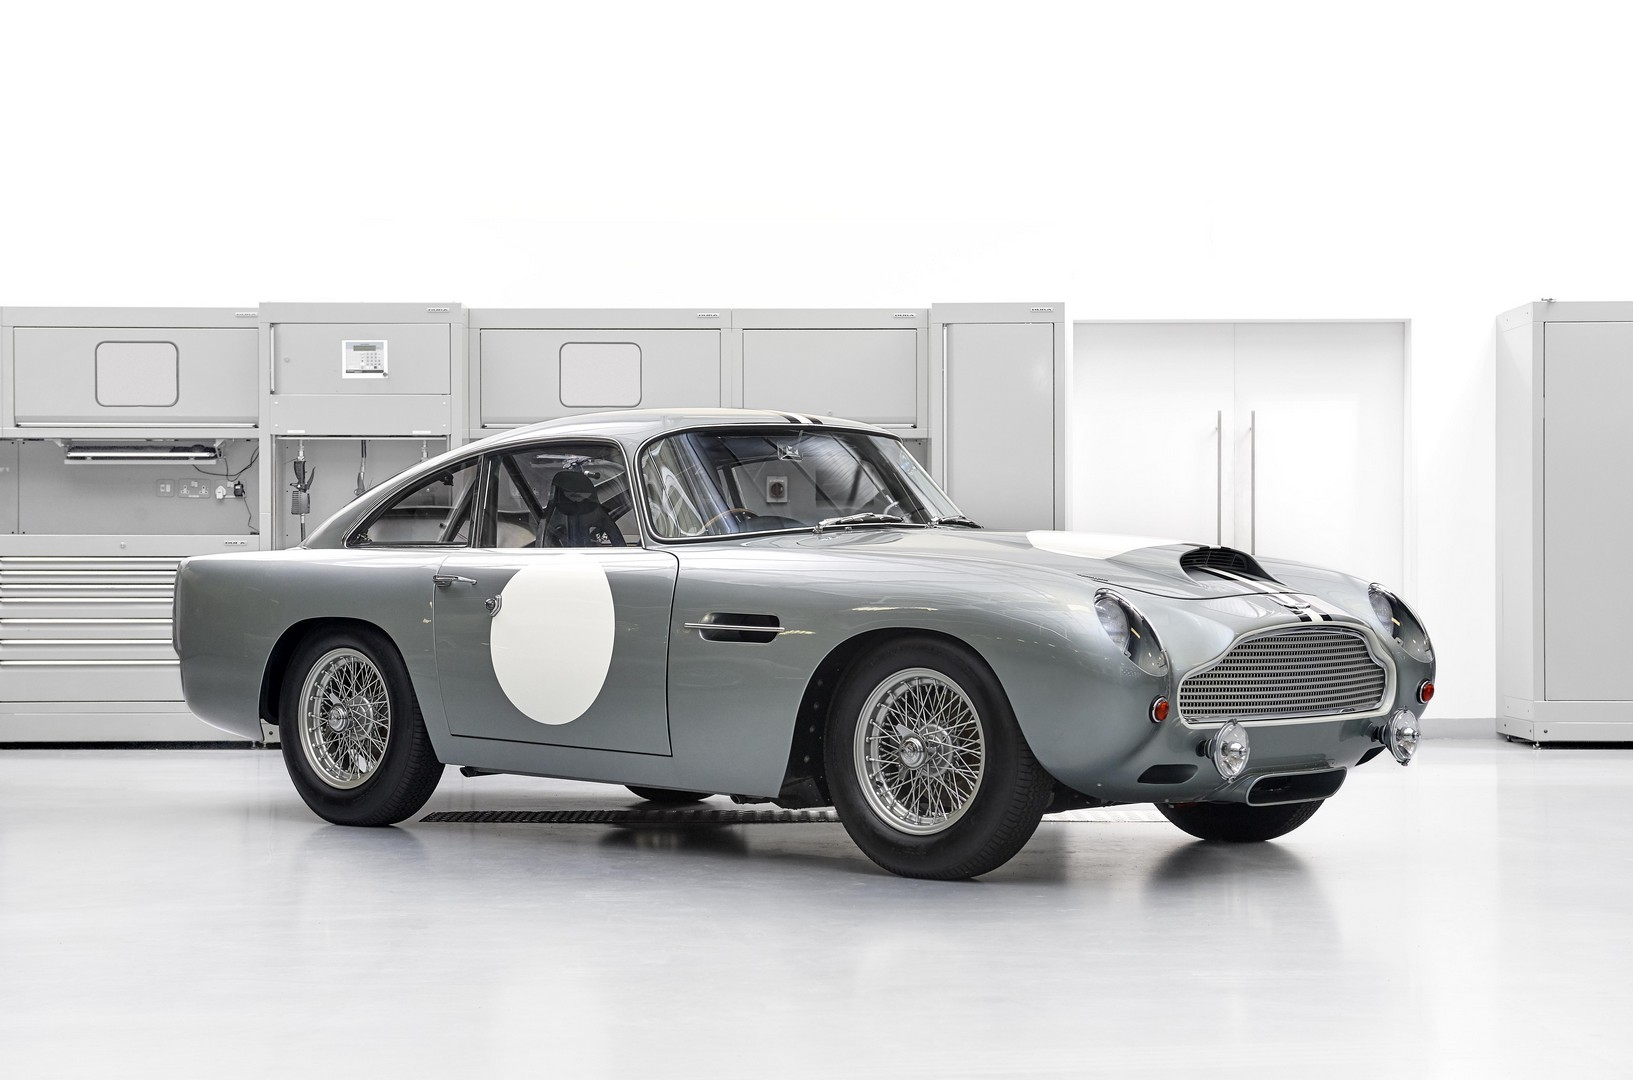 The First Aston Martin Db4 Gt Continuation Is Back Home And Up For Grabs Again Autoevolution